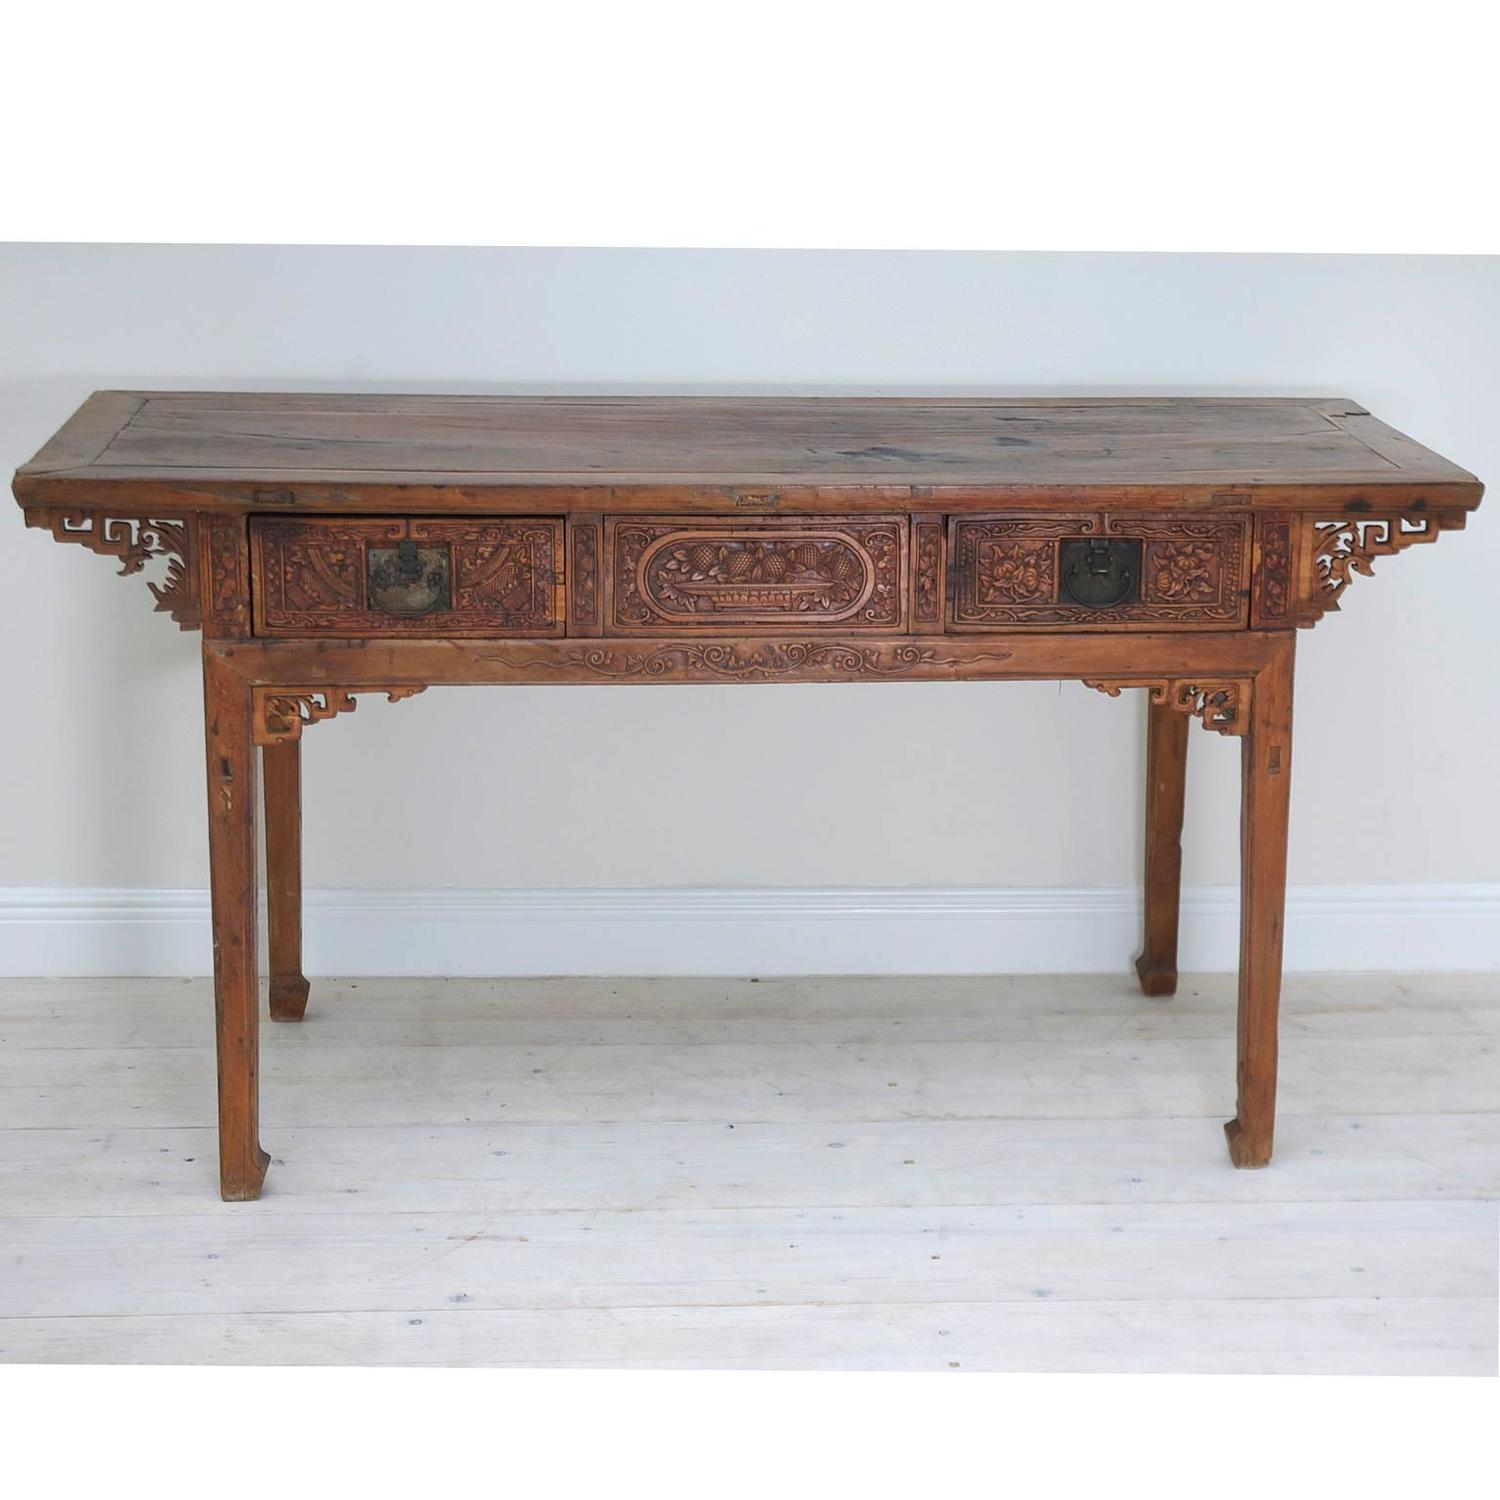 Wedding Altars For Sale: Antique Chinese Altar Table With Fine Carvings For Sale At